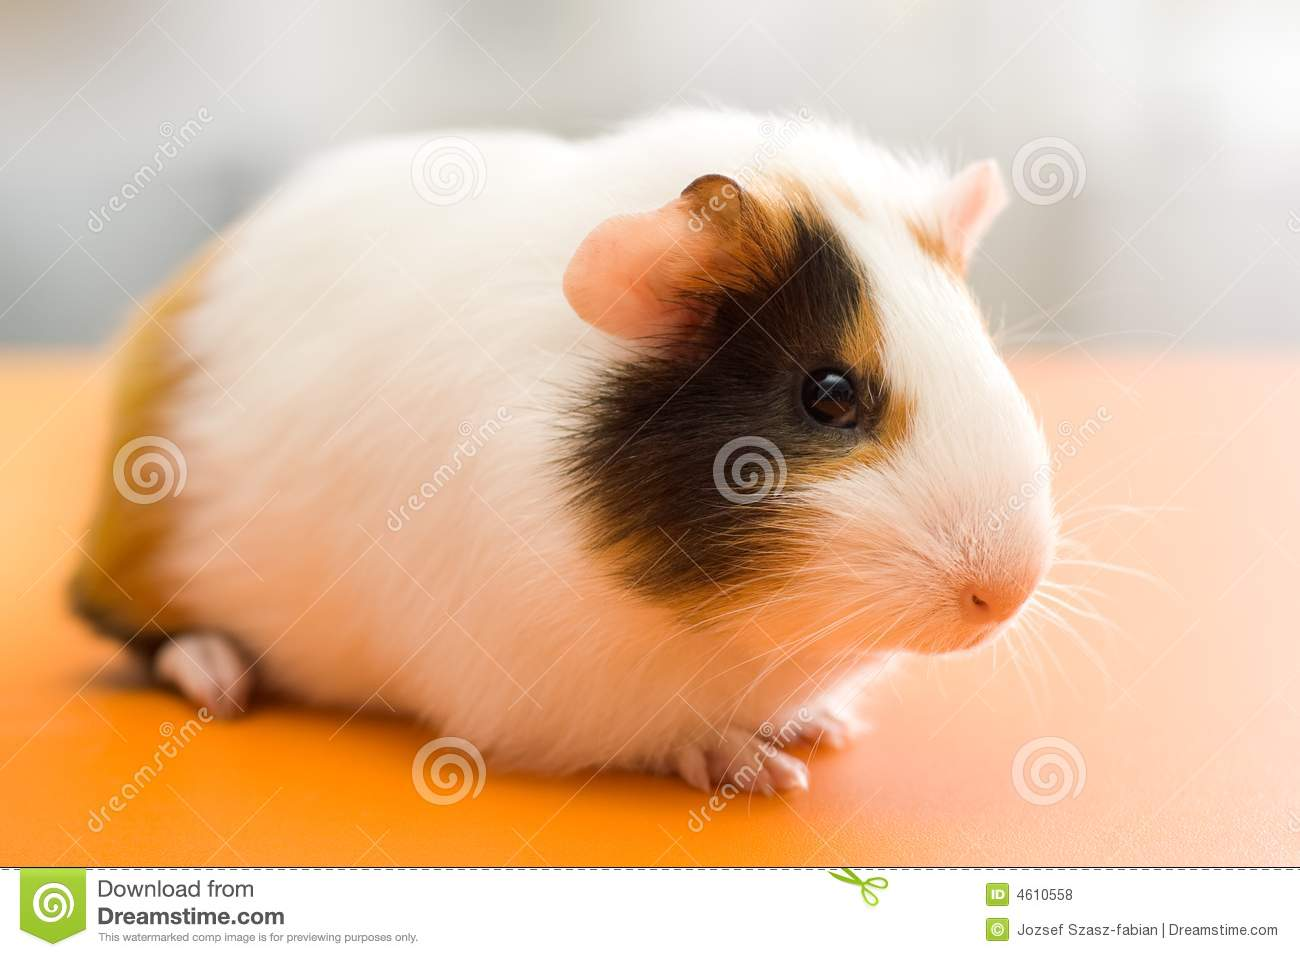 Guinea pig royalty free stock photos image 4610558 for Guinea pig pictures free